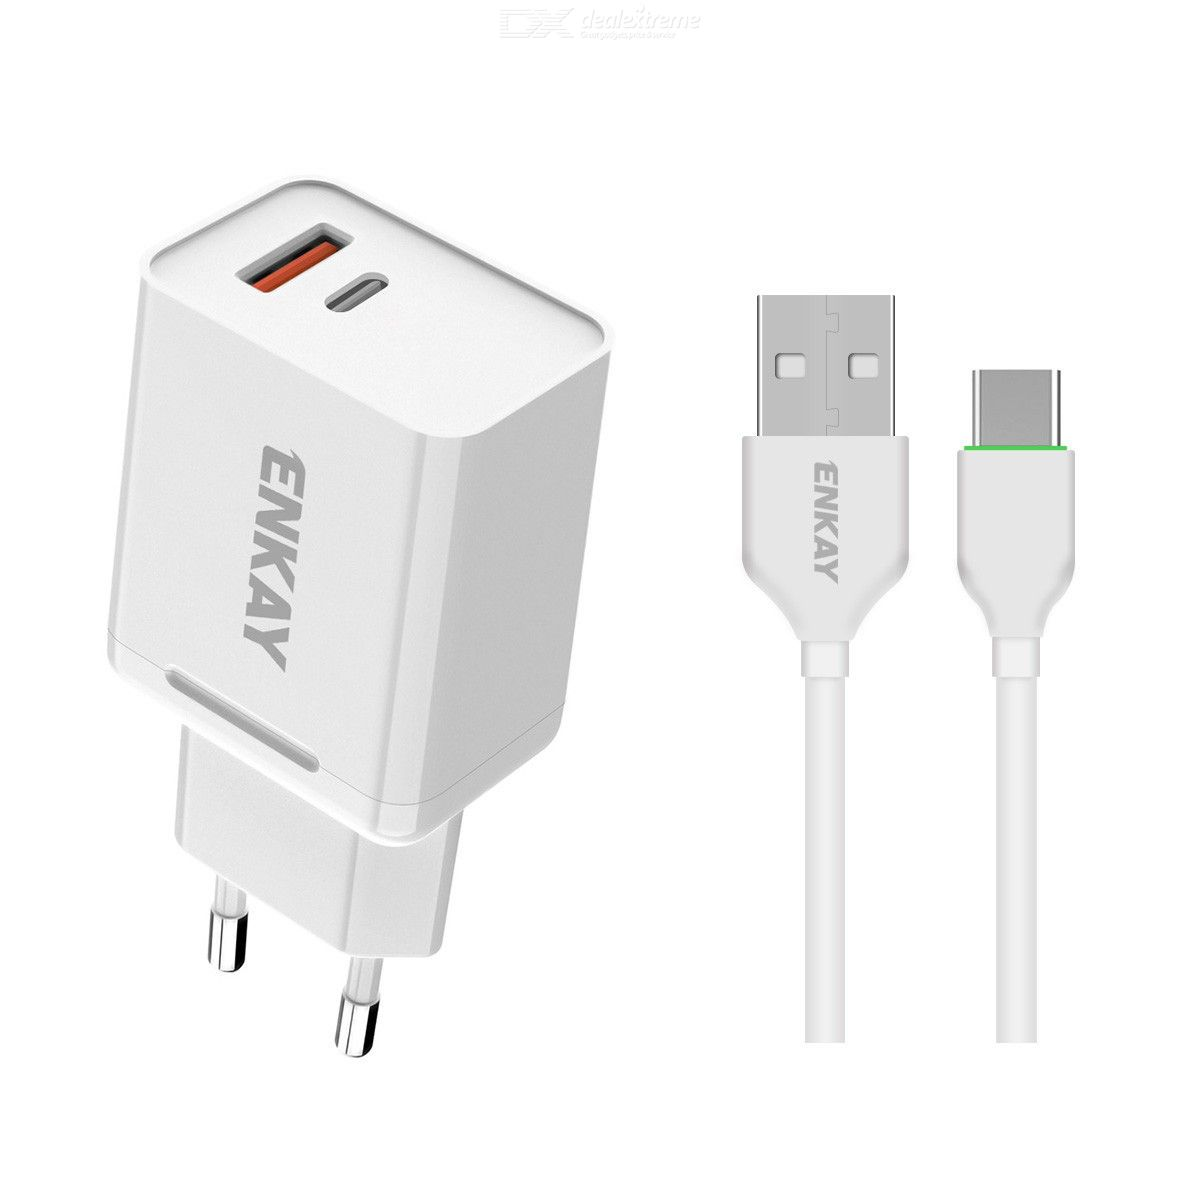 Hat-Prince ENKAY 18W USB + Type-C Power Adapter QC3.0 PD Super Fast Charging EU Plug Portable Travel Charger With Micro USB Cabl